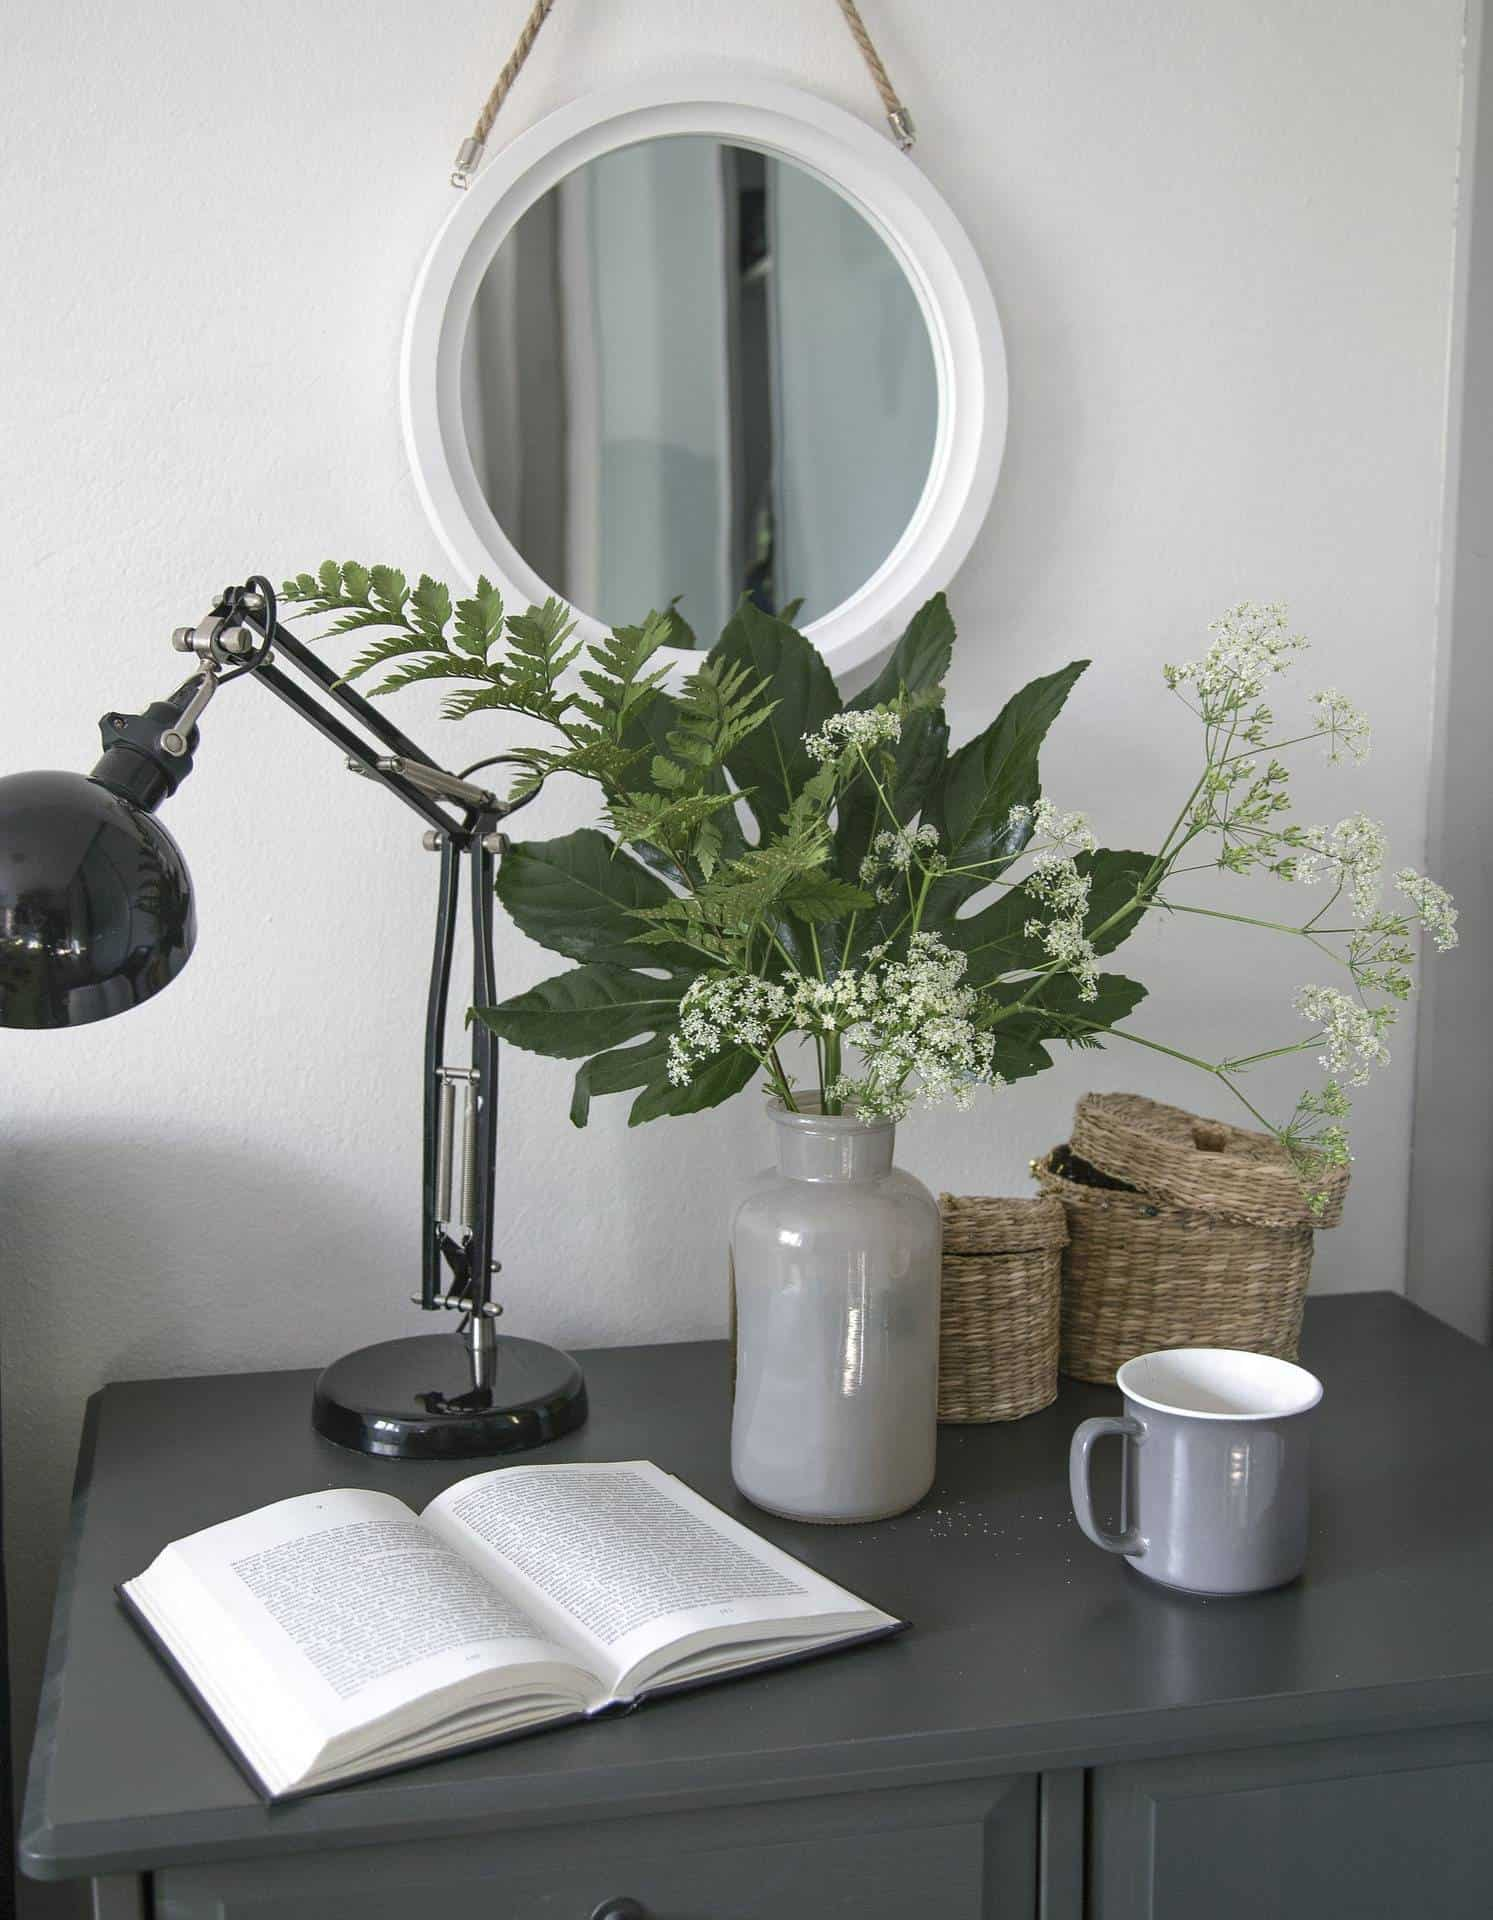 ways to increase the light in your home